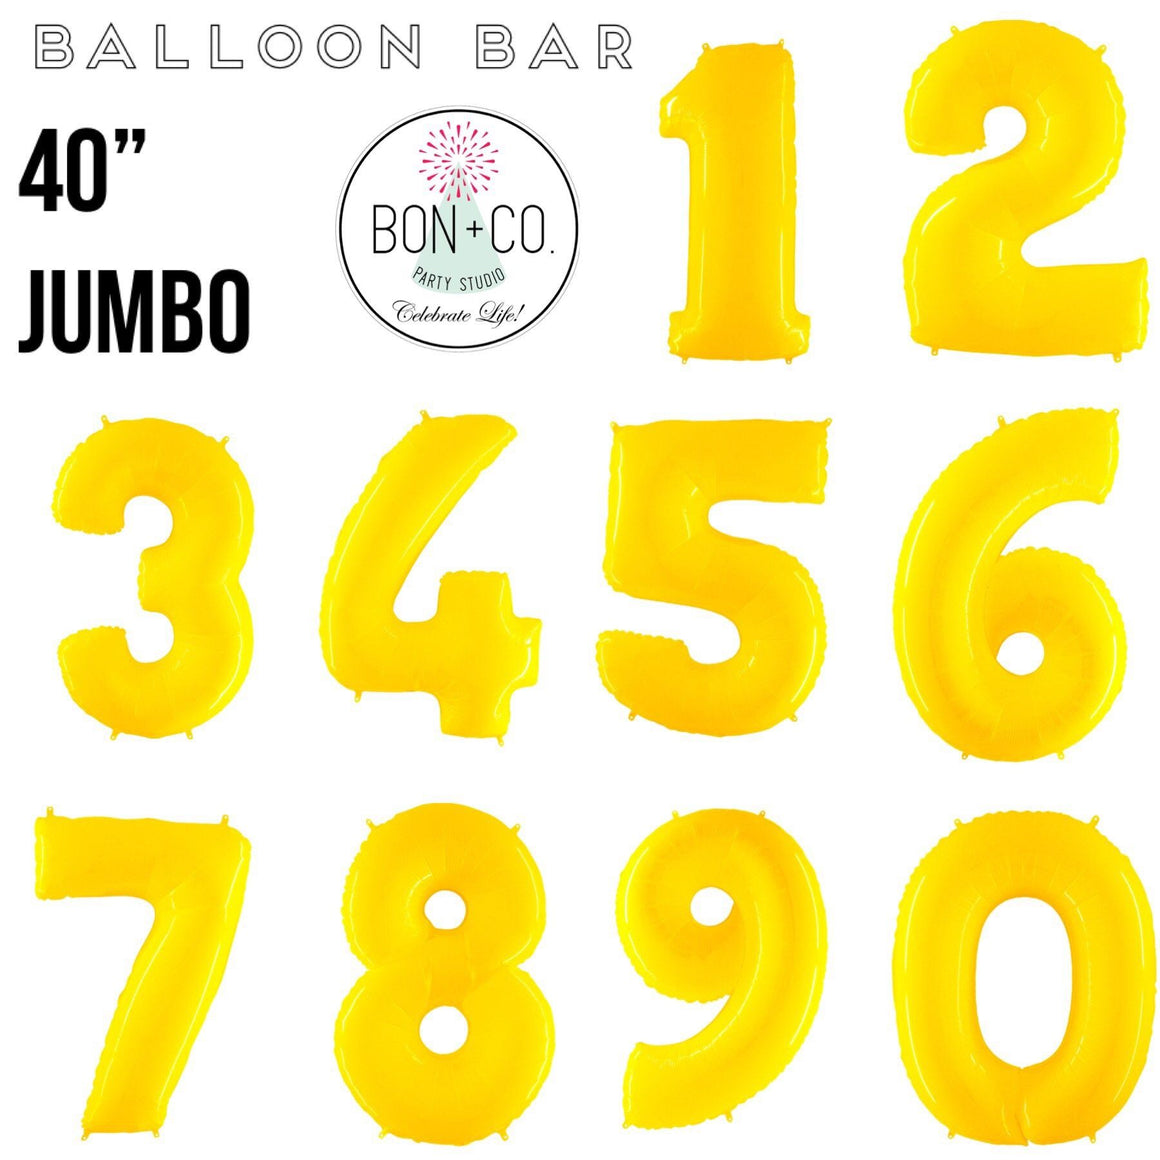 "BALLOON BAR - 40"" JUMBO NUMBER BRIGHT YELLOW, Balloons, bargain balloons - Bon + Co. Party Studio"